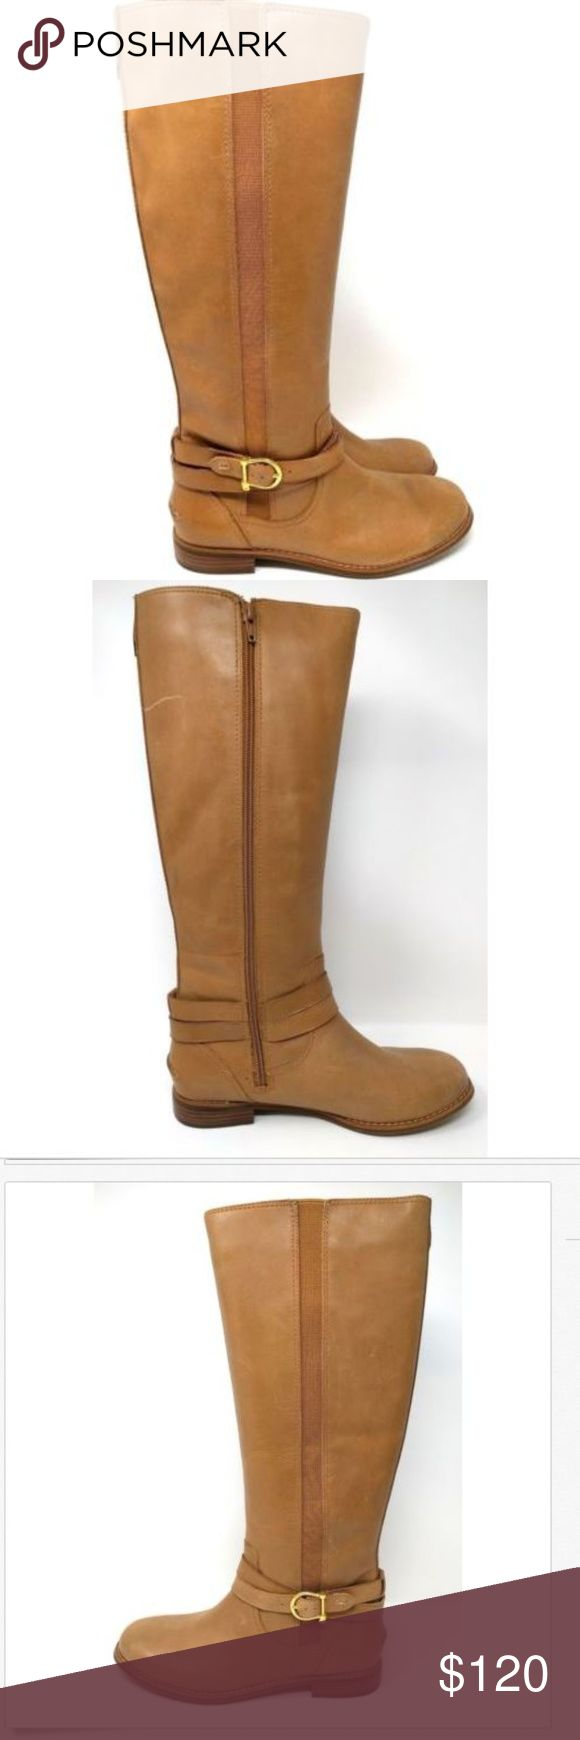 """SPERRY TOP-SIDER 8 Tall Cedar Riding Boot NEW SPERRY TOP-SIDER 8 Tall Cedar Riding Boot Elasic Gore Insert Cognac Leather NEW Nordstrom Rack clearance shoes have been tried on in store and have surface scratches.  Leather. Synthetic sole. Shaft measures approximately 16"""" from arch. Heel measures approximately 1"""". Boot opening measures approximately 15"""" around. Riding boot with polished buckle and full-length goring insert at side. Full-length instep zipper. Sperry Shoes Heeled Boots"""